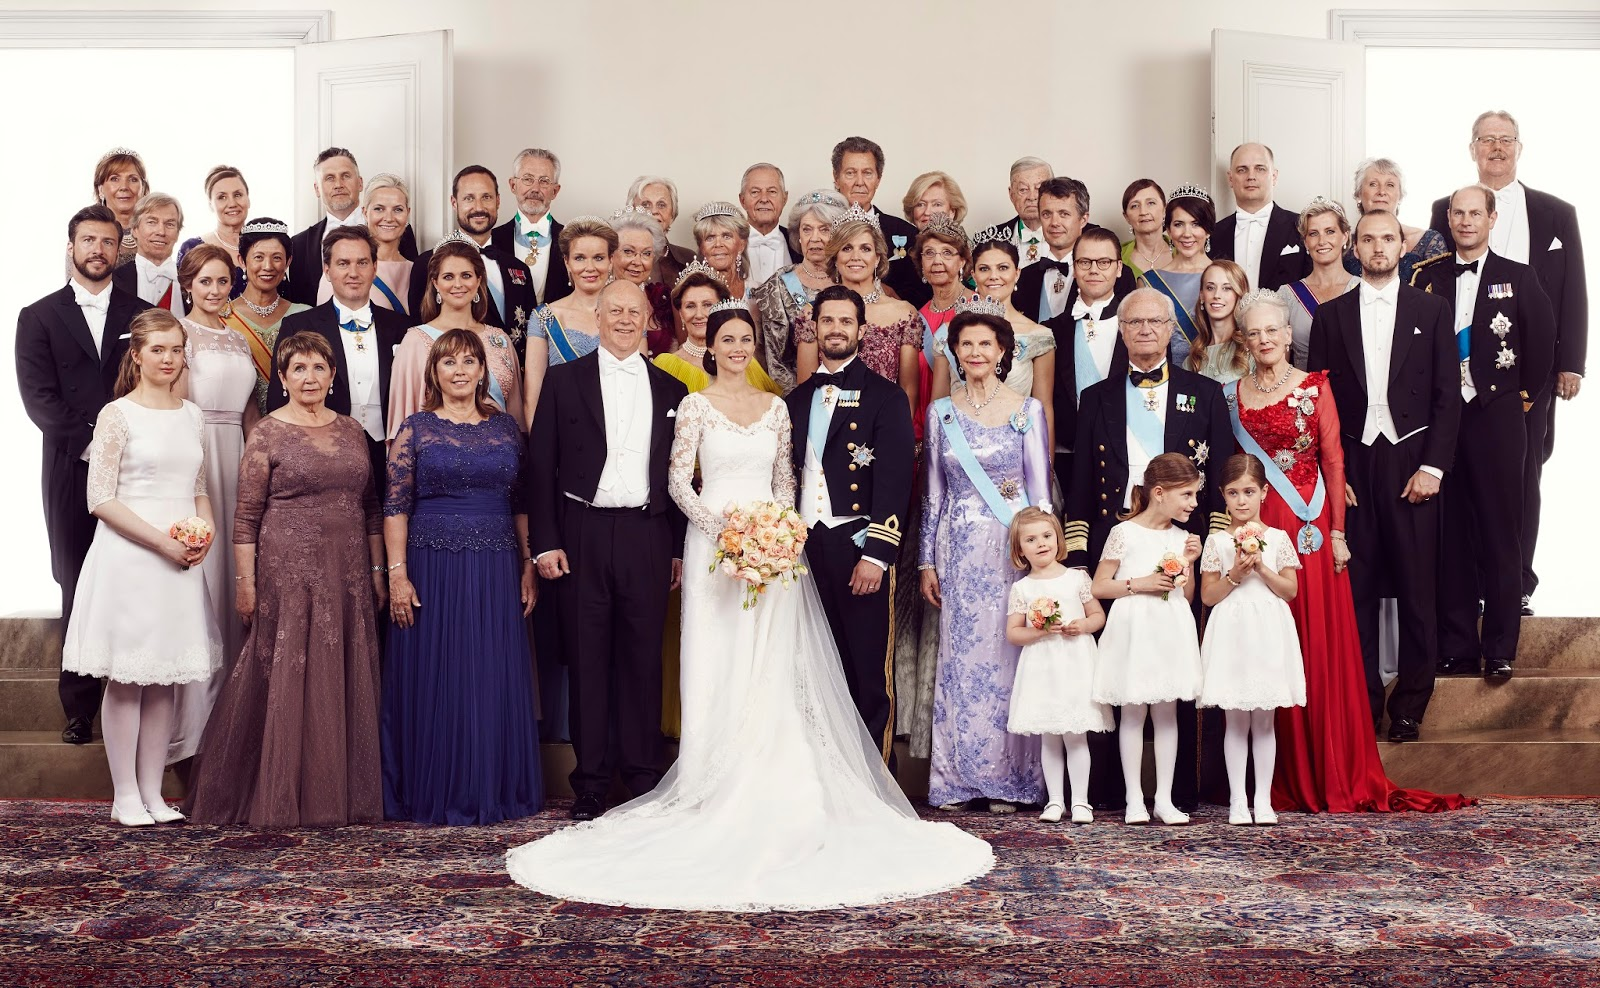 Real Royal Weddings: Royal Weddings 2015: The Official Photos